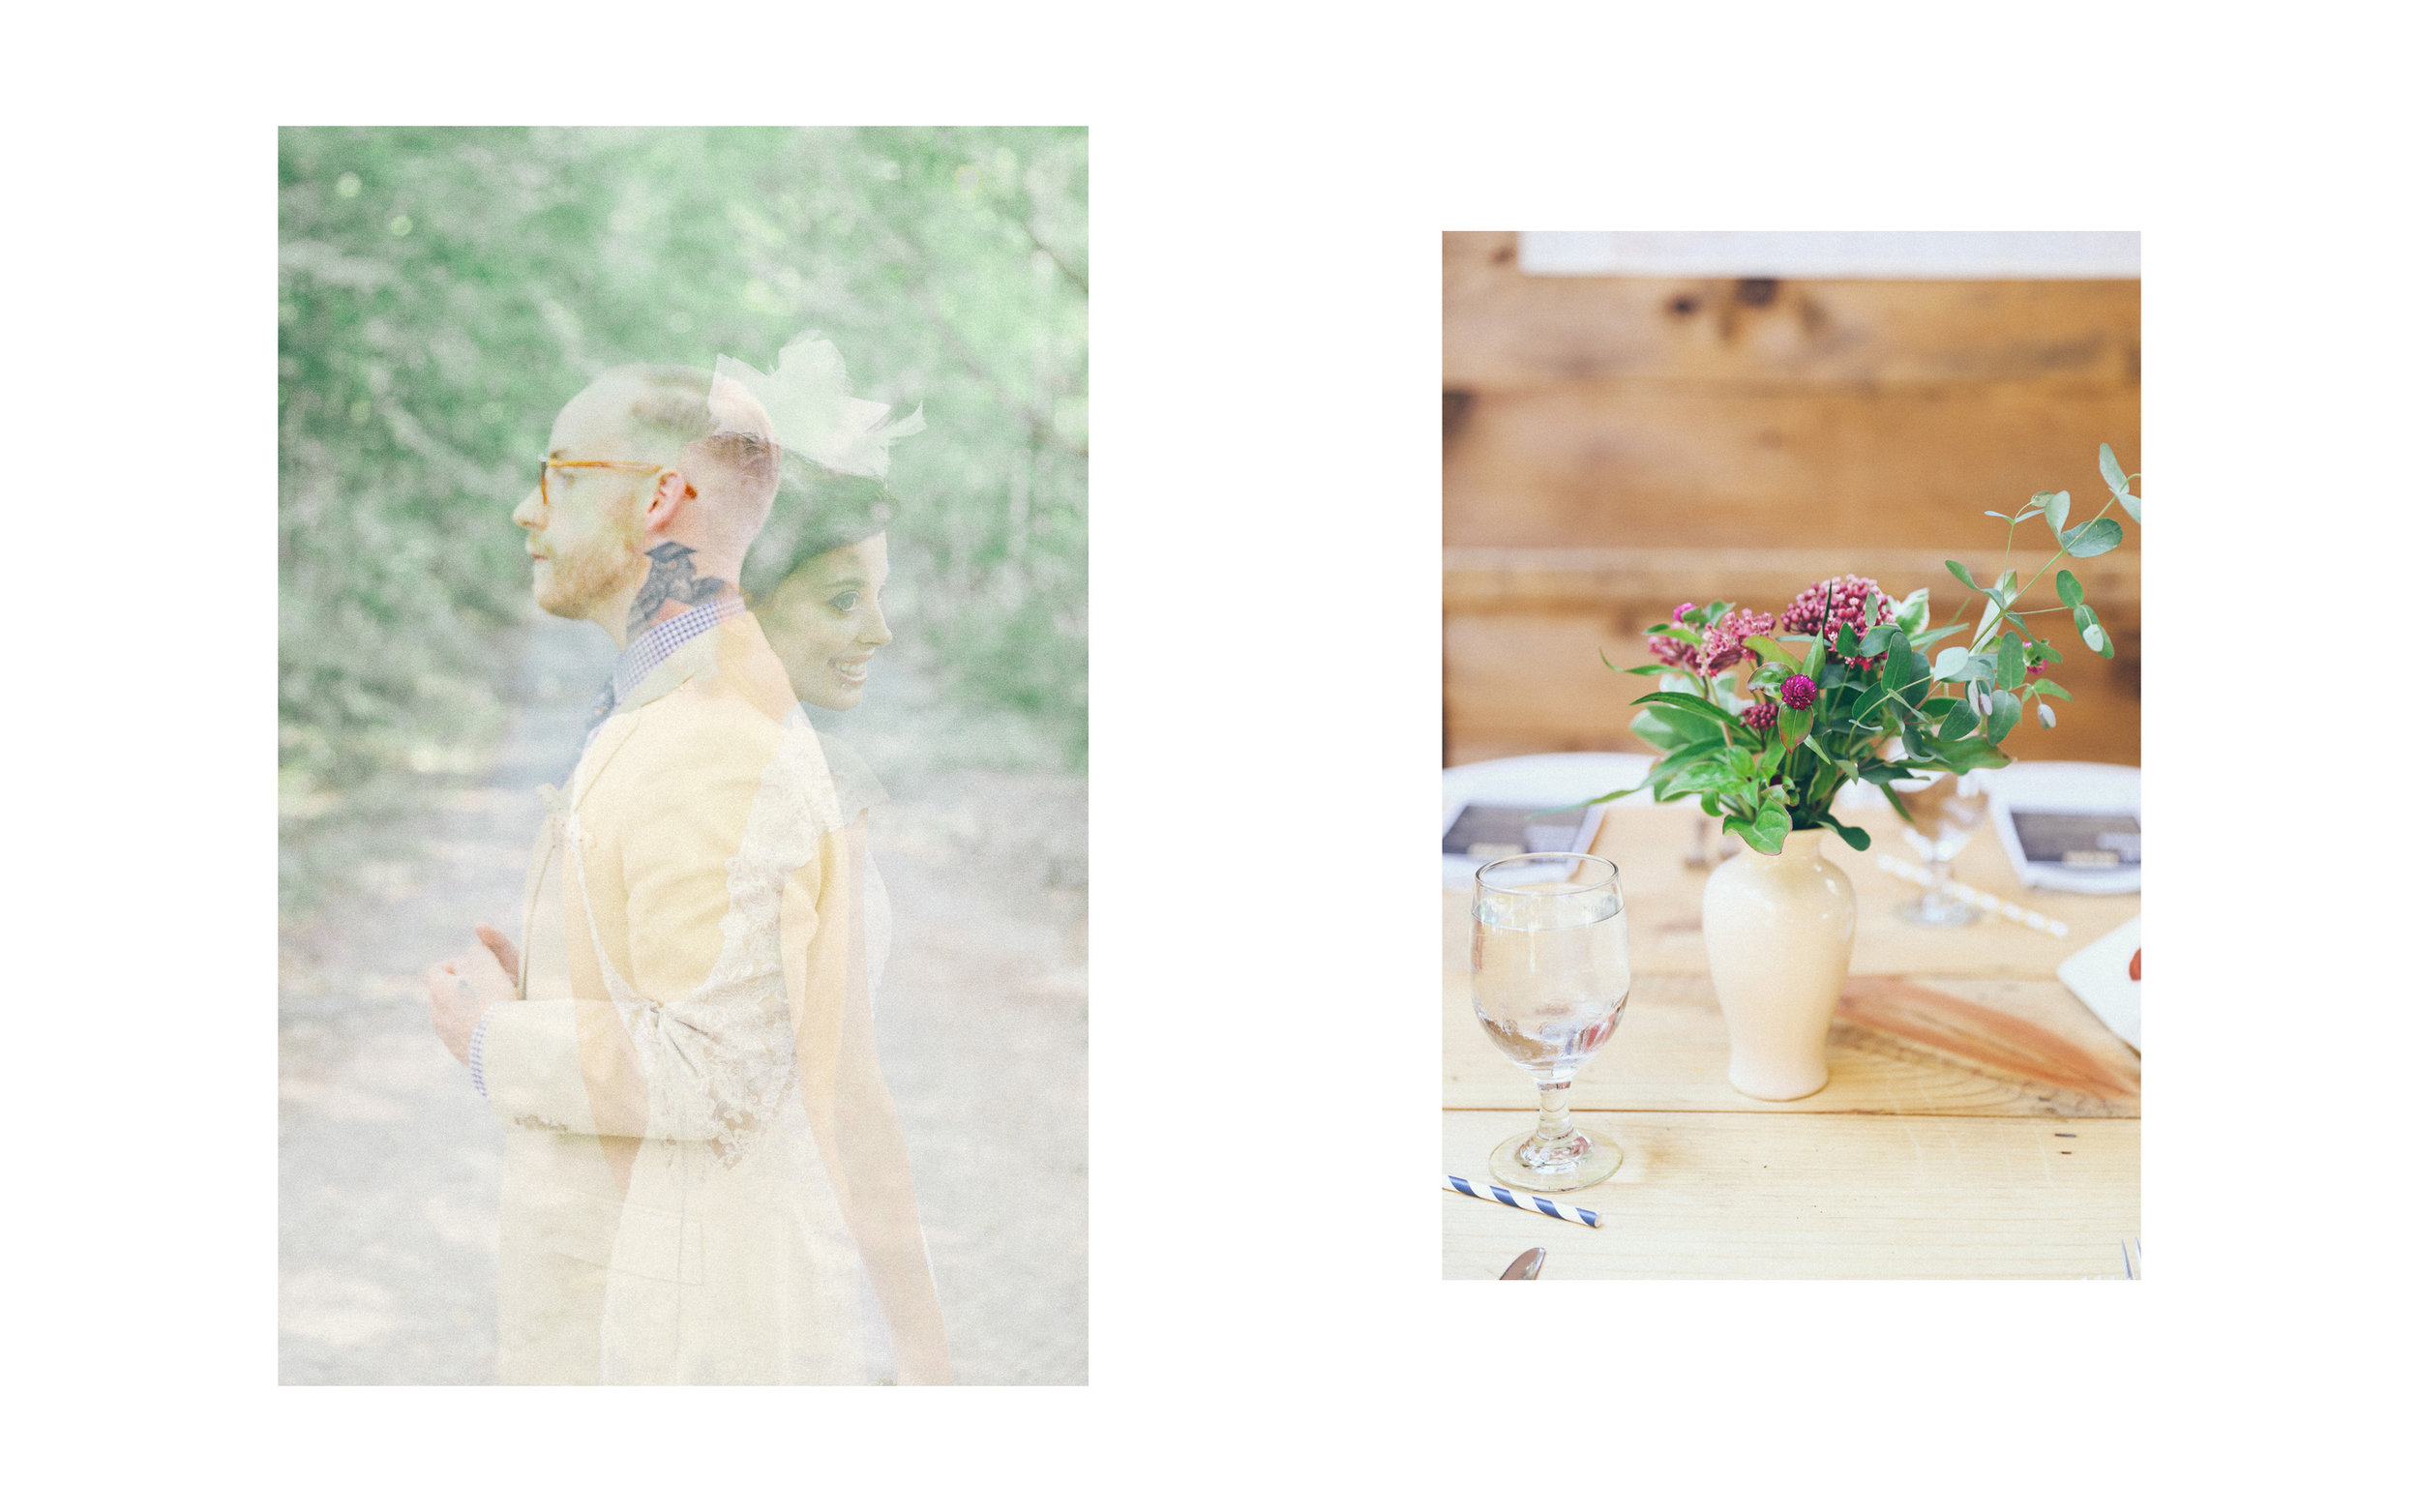 Fine Art Wedding Photographer_Meg Haley Photographs_001.jpg